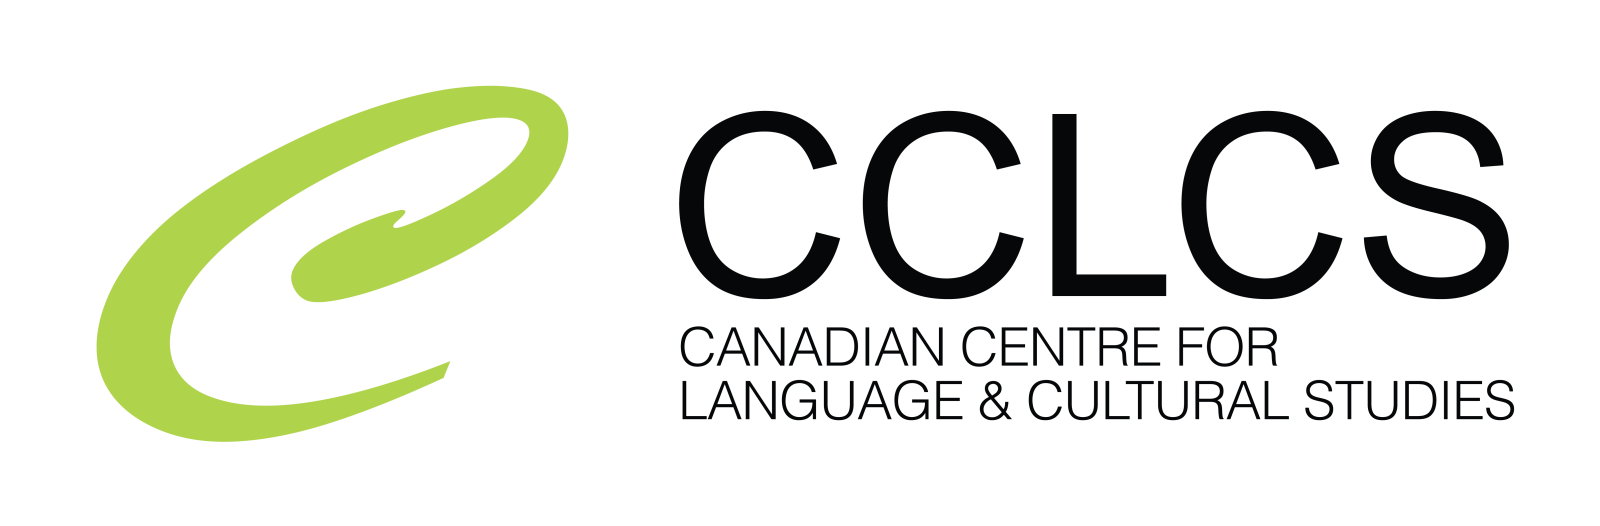 Canadian Centre for Language & Cultural Studies, INC. (CCLCS)